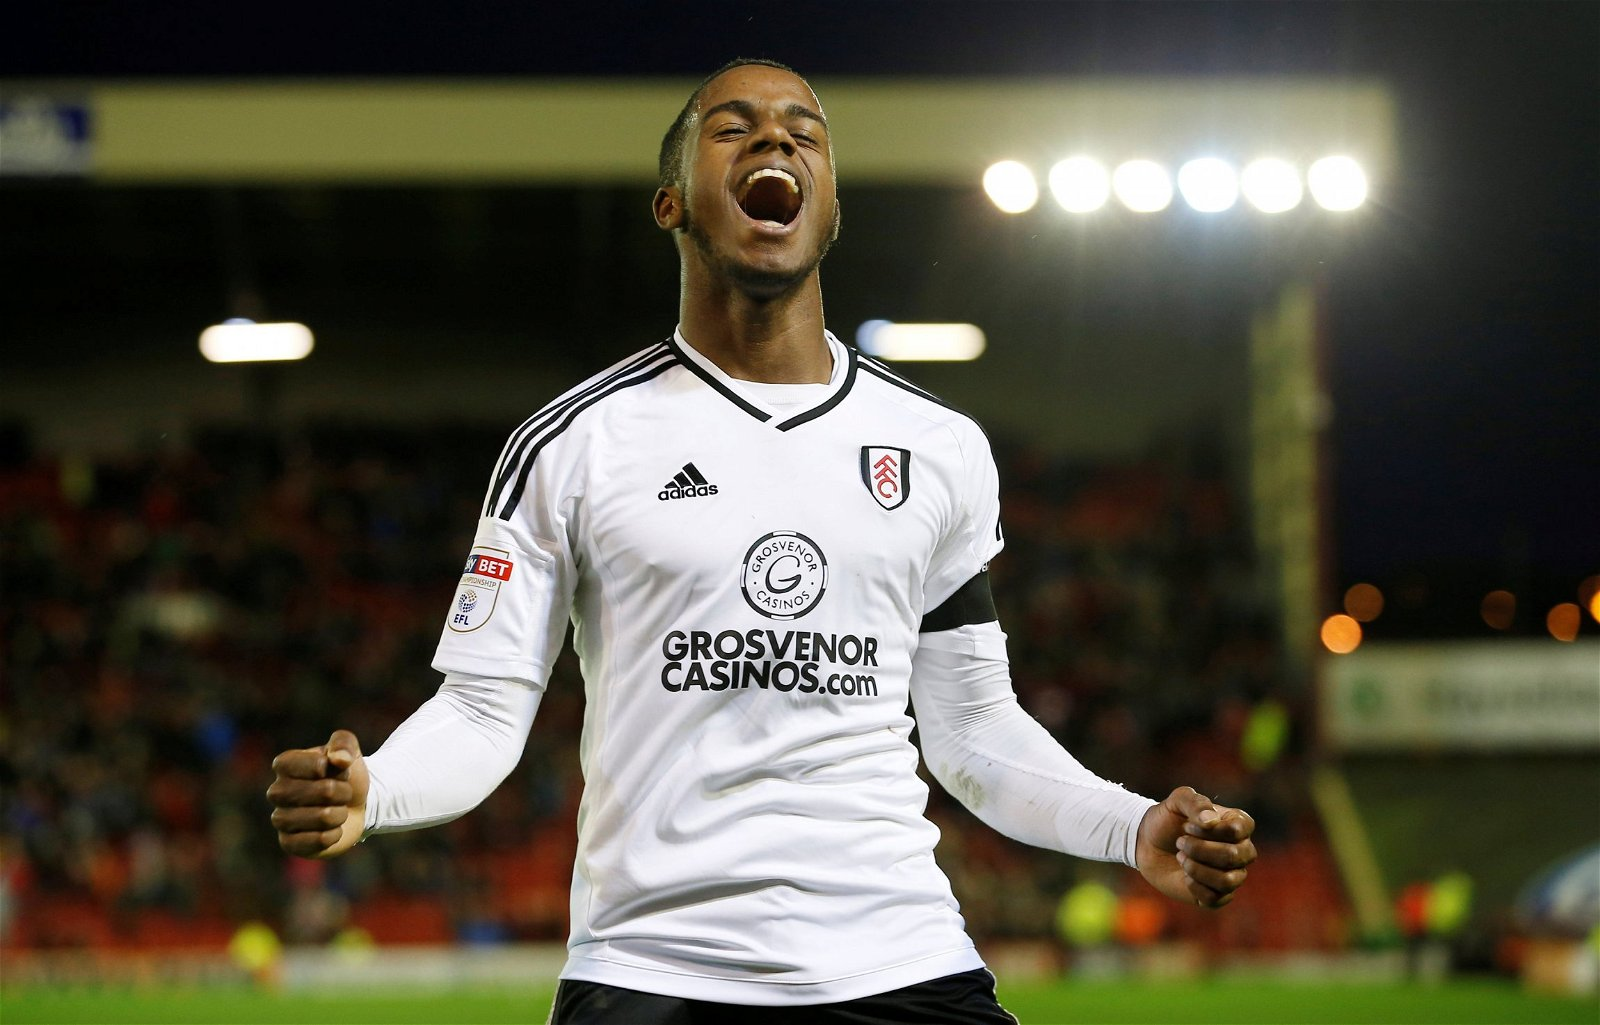 Fulham winger Ryan Sessegnon celebrates goal vs Barnsley